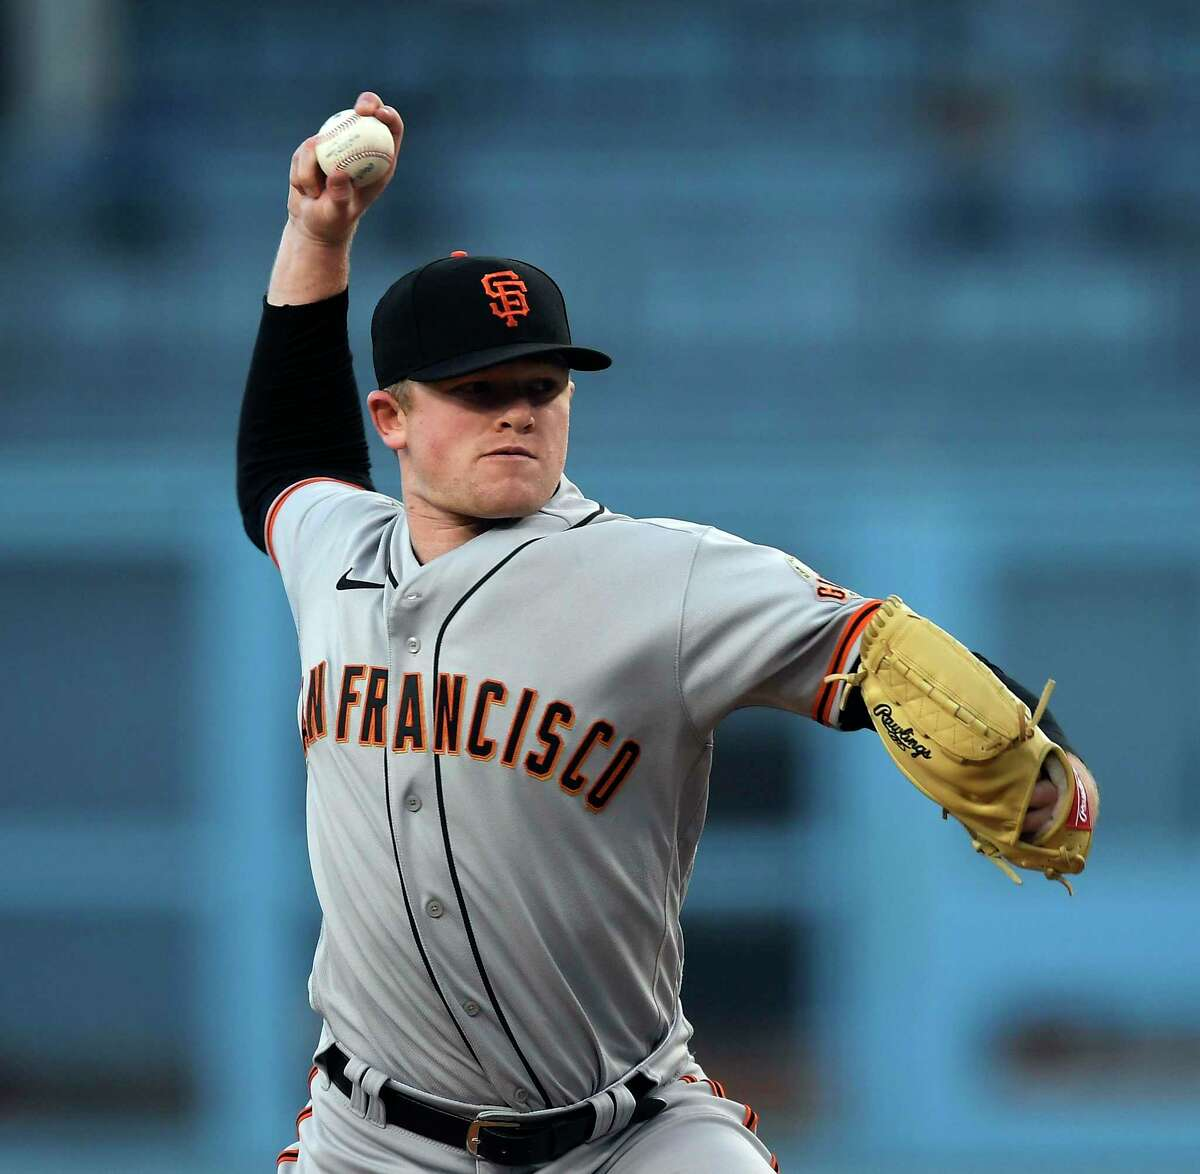 Logan Webb, who gave up two runs on three hits in five innings in the Giants' 4-2 win at Dodger Stadium on Wednesday, is set to start the opener of a three-game series against L.A. at Oracle Park at 6:45 p.m. Tuesday (NBCSBA/104.5, 680).